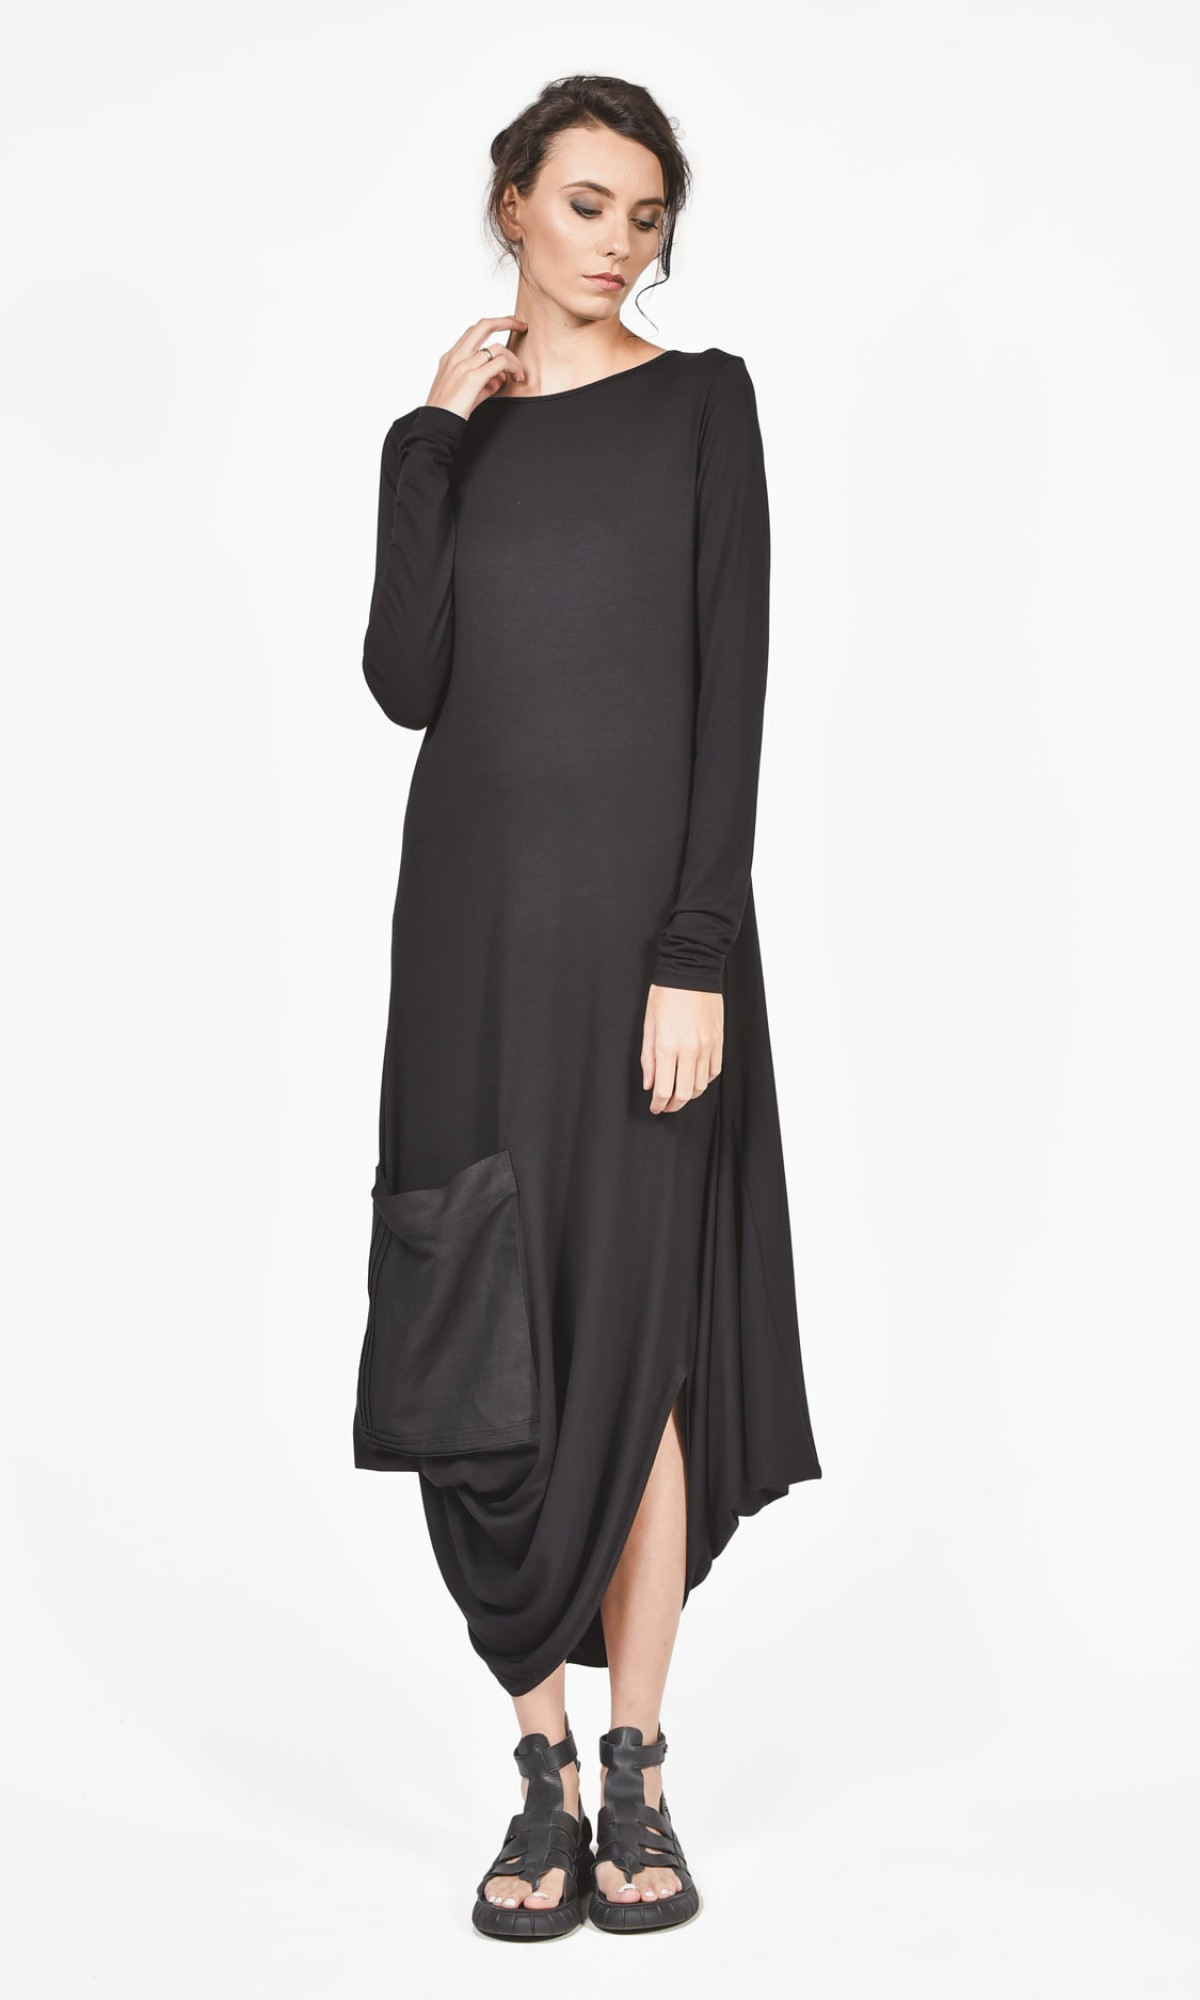 Asymmetric Black Dress with front linen pocket A03597